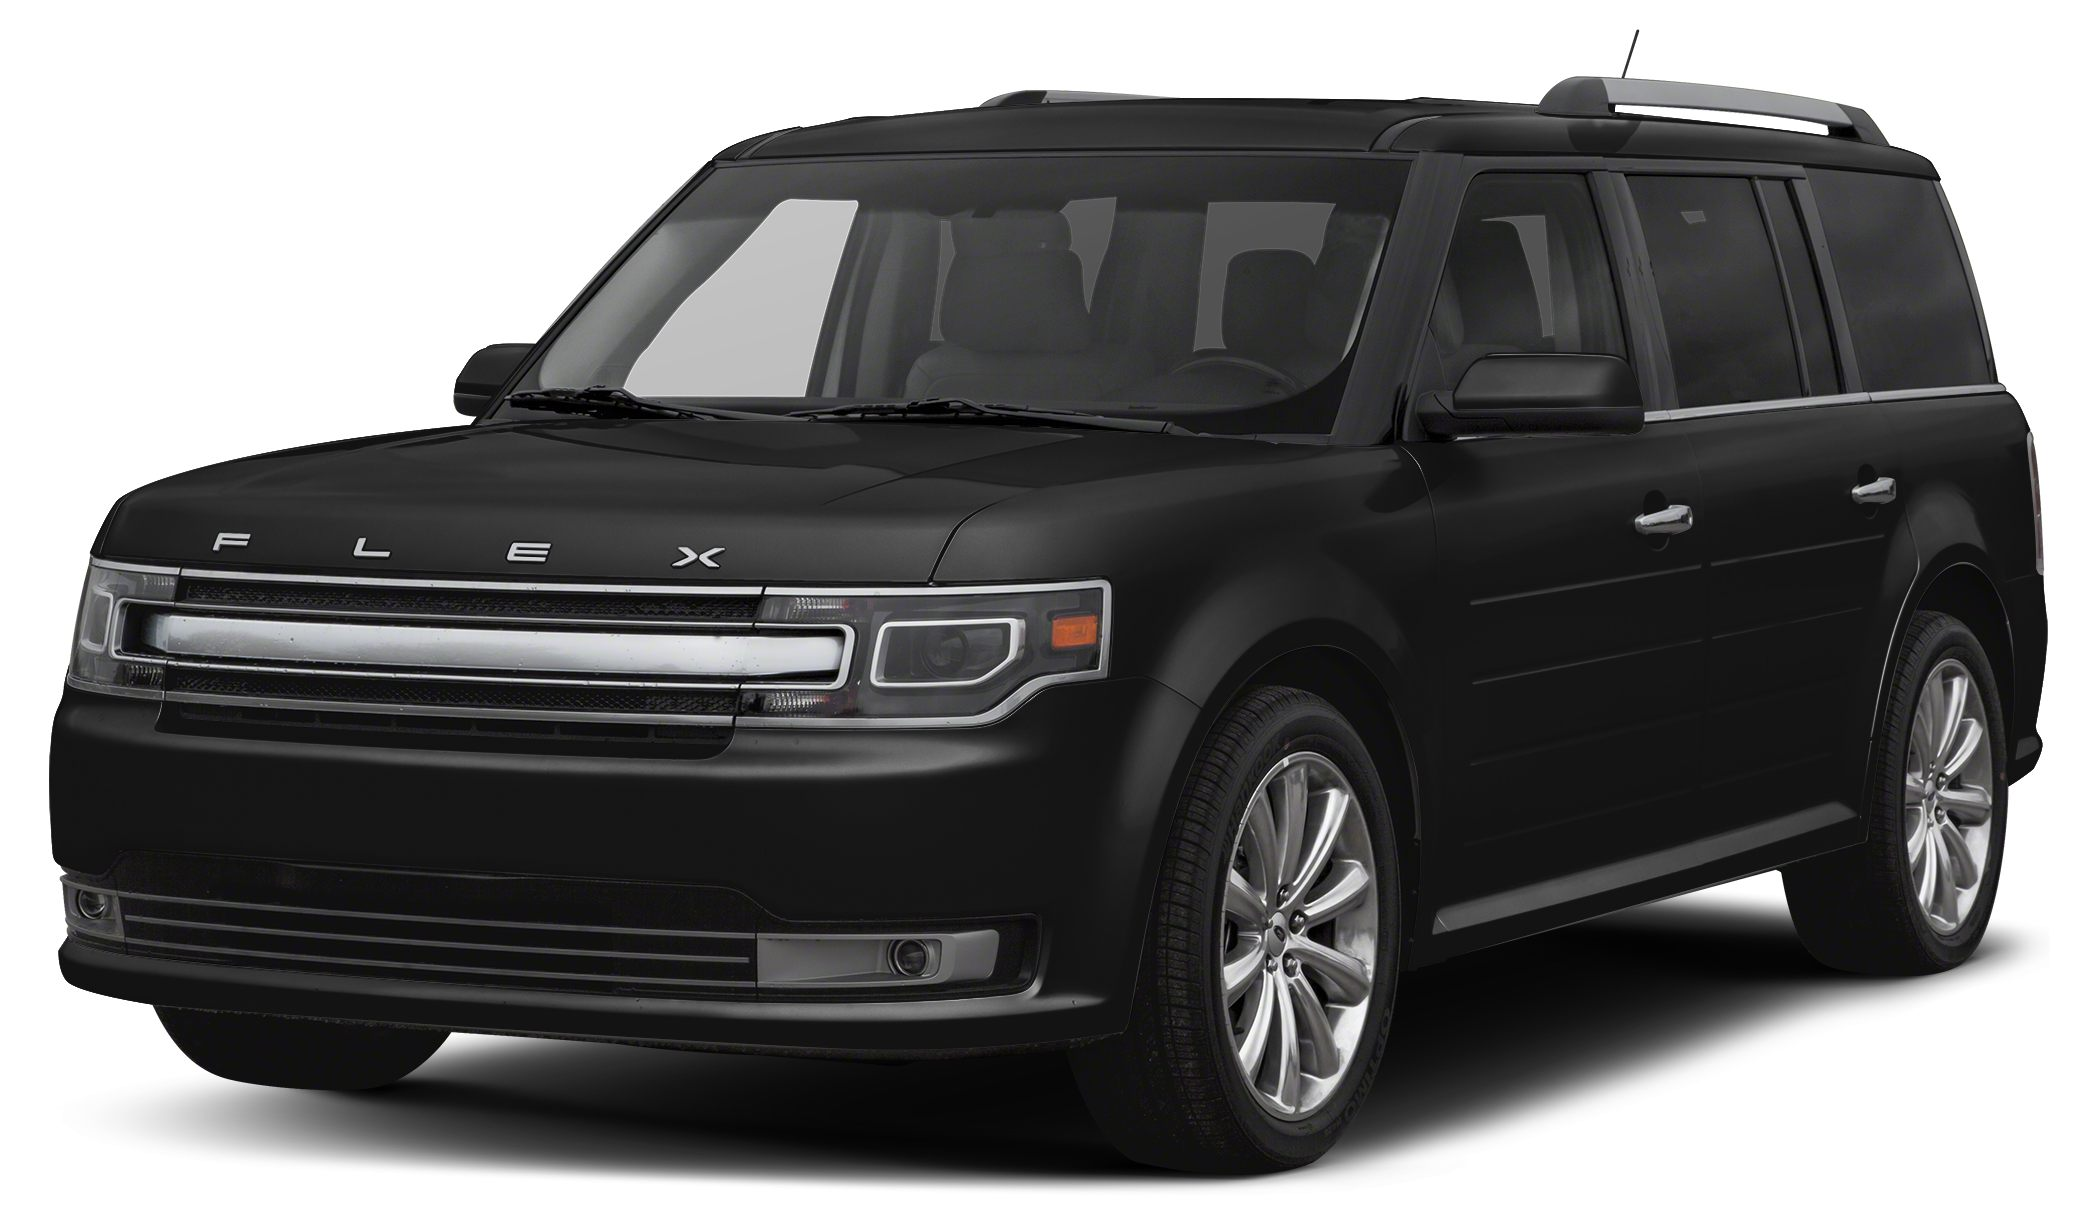 2014 Ford Flex Limited Flex Limited 4D Sport Utility 35L V6 Ti-VCT 6-Speed Automatic with Sele